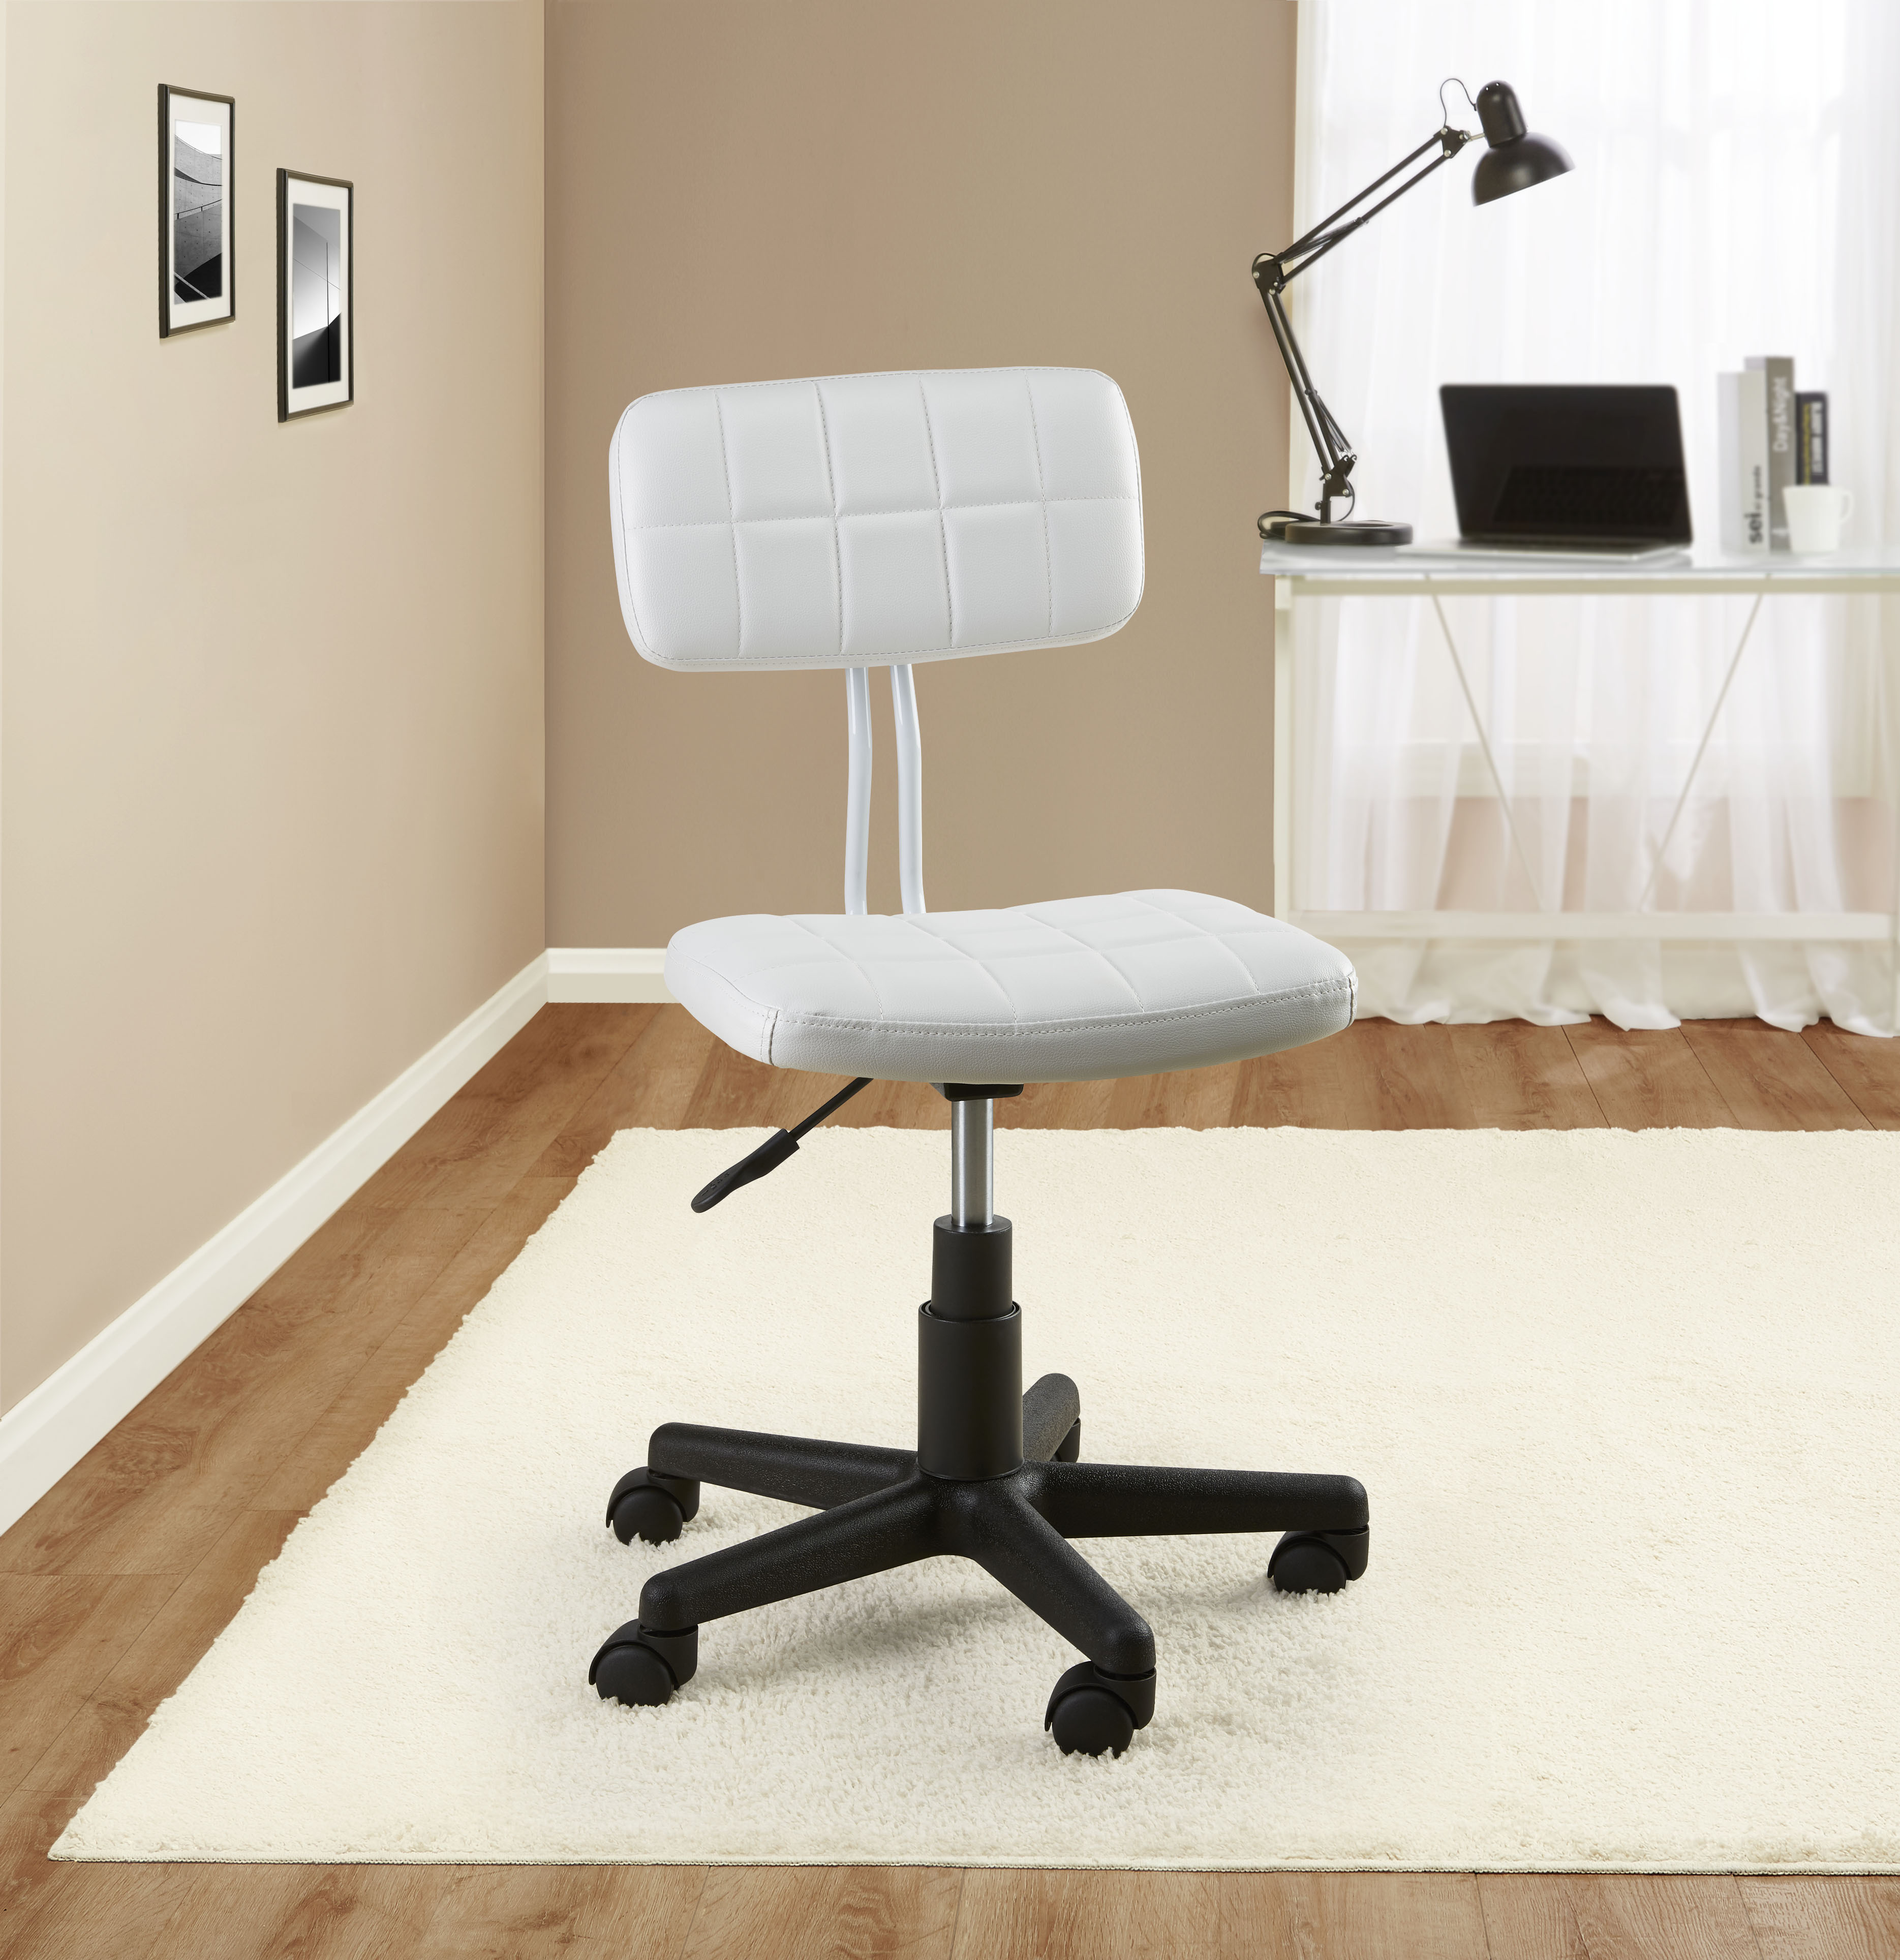 Mainstays Student Faux Leather Office Rolling Chair. Product Variants  Selector. White